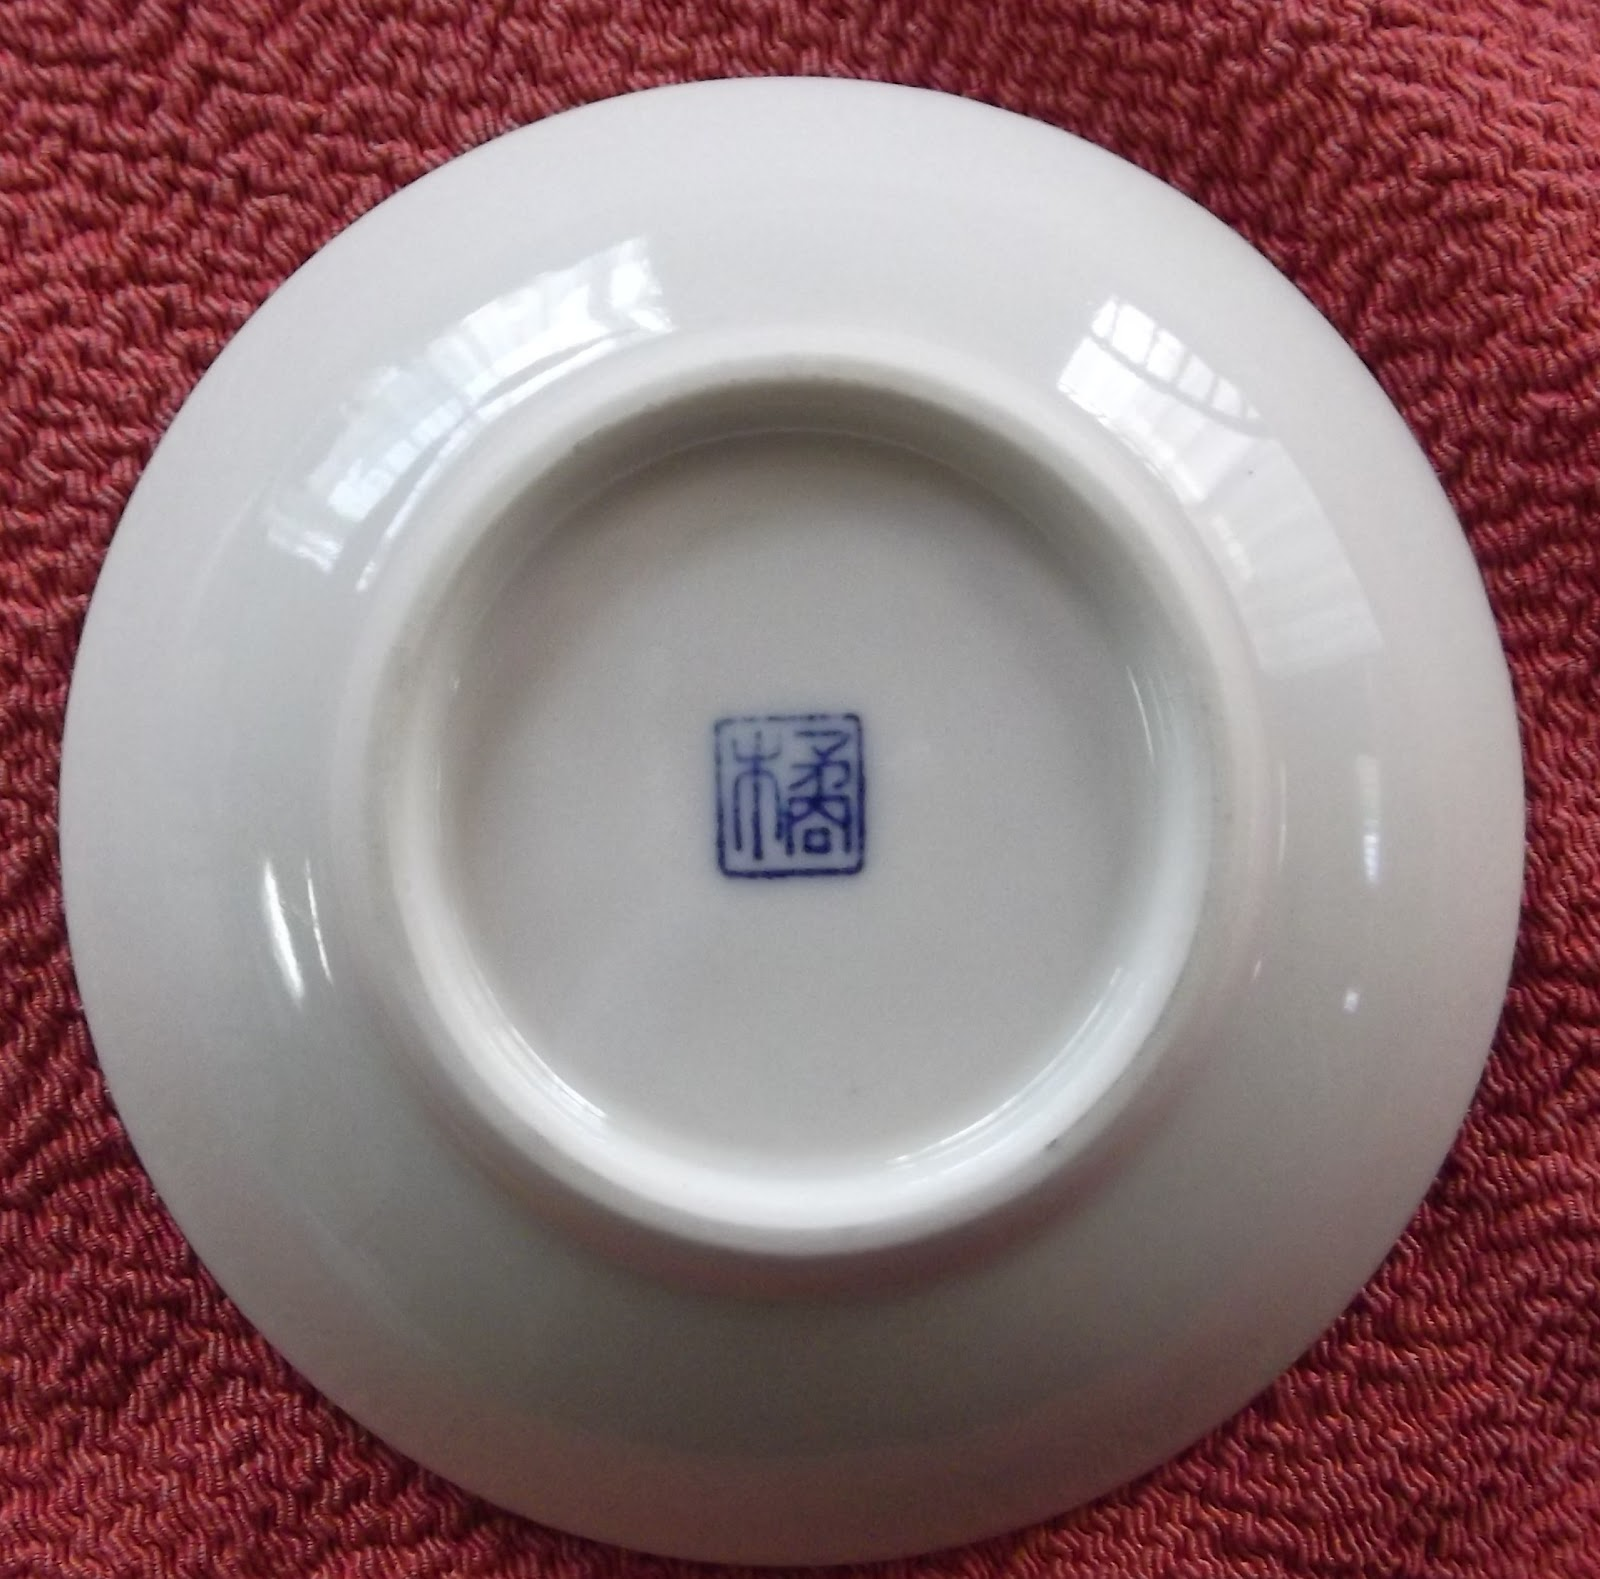 Modern Japanese Pottery and Porcelain Marks (窯印